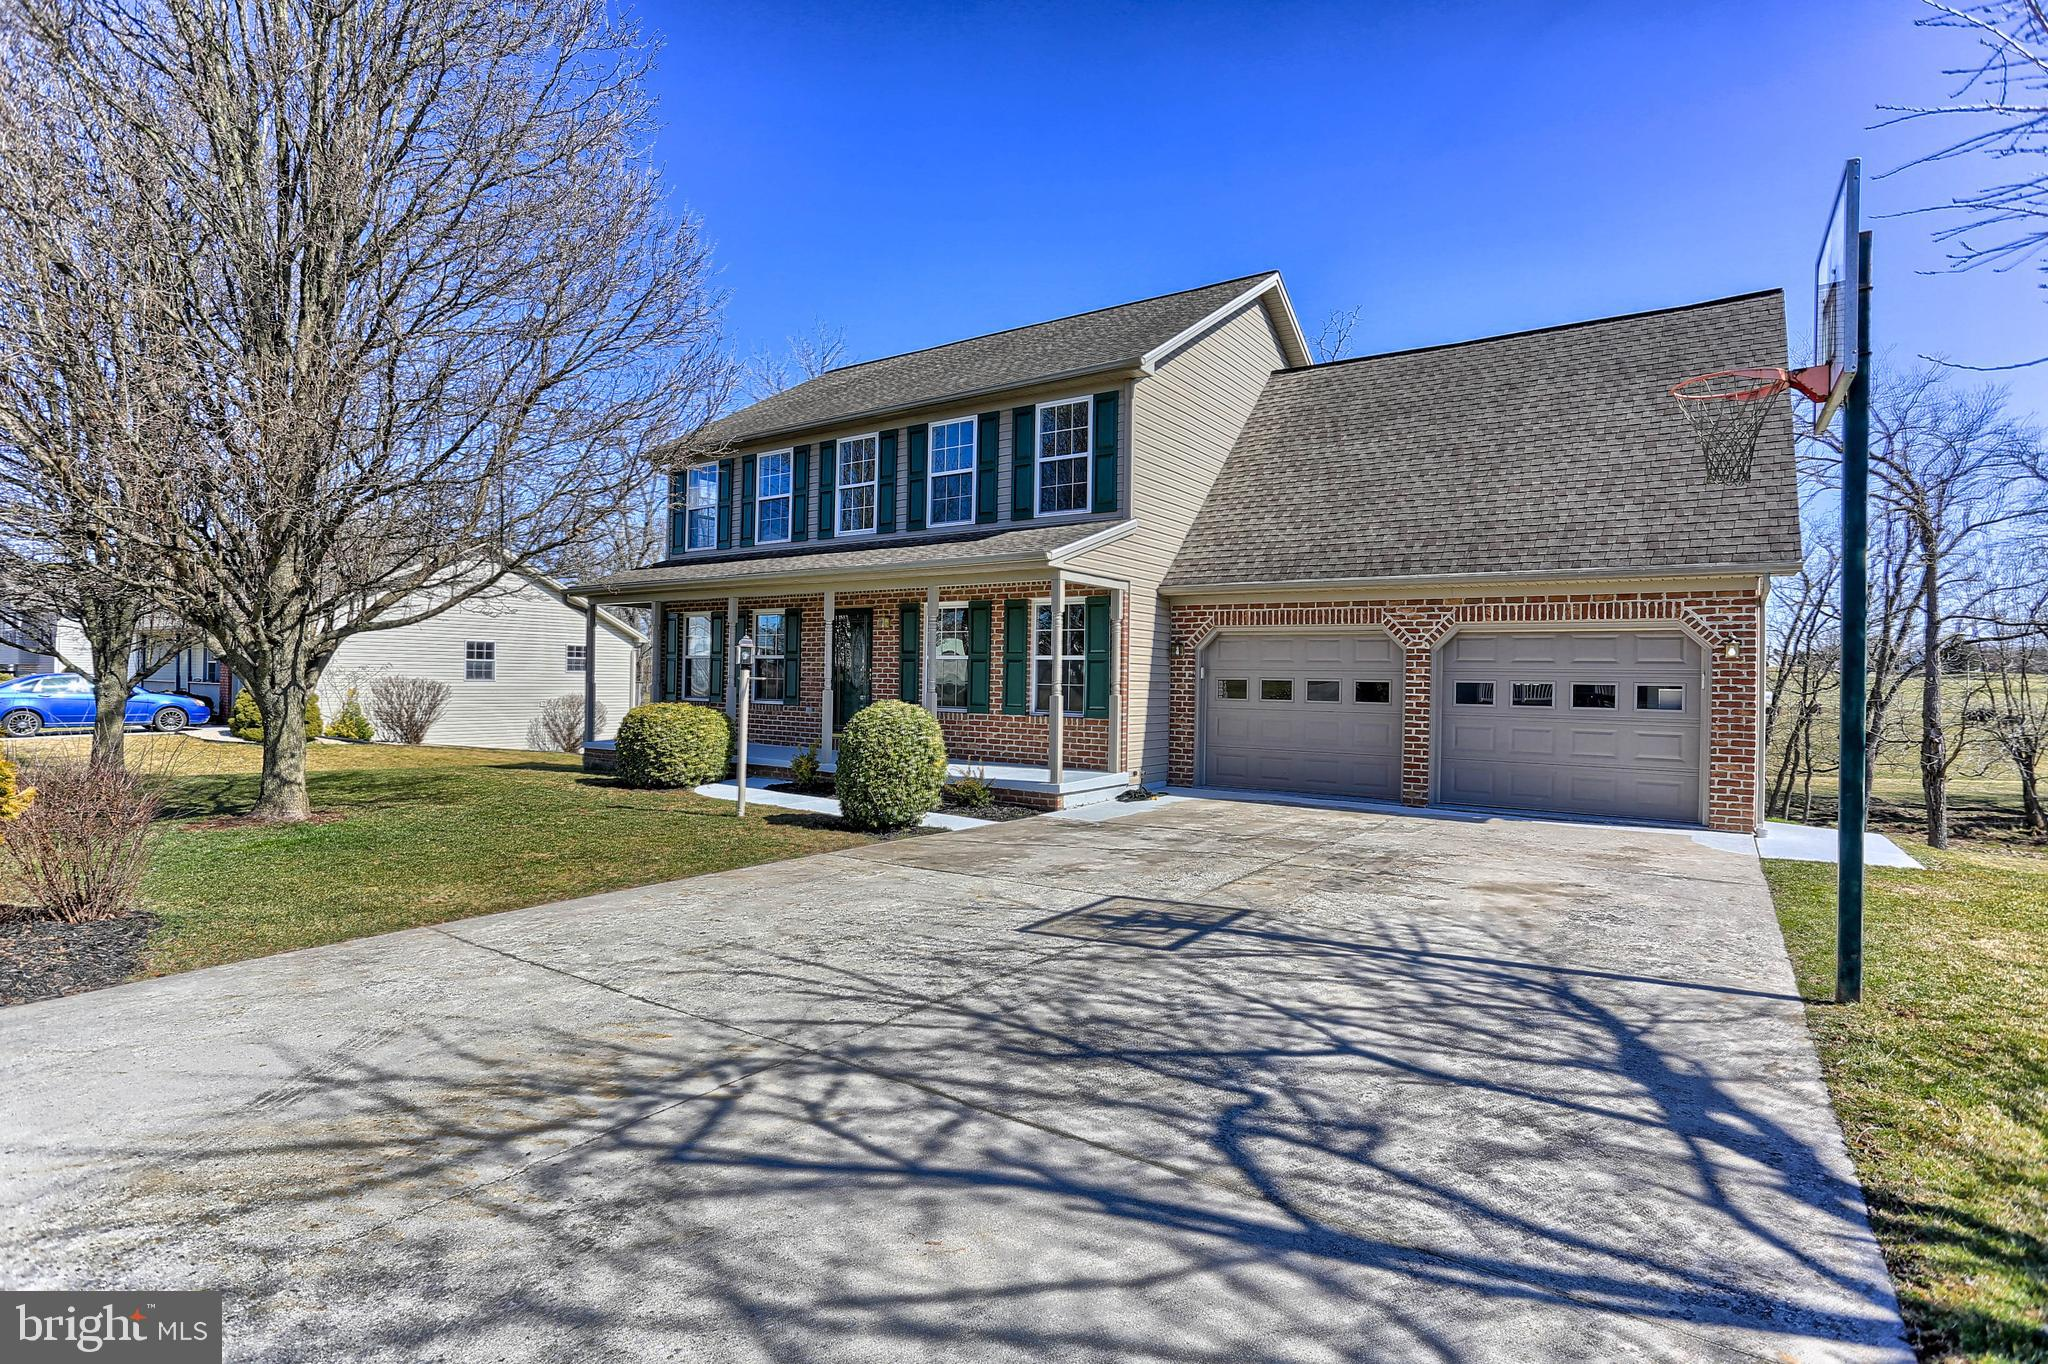 164 BRANCH CIRCLE, EAST BERLIN, PA 17316